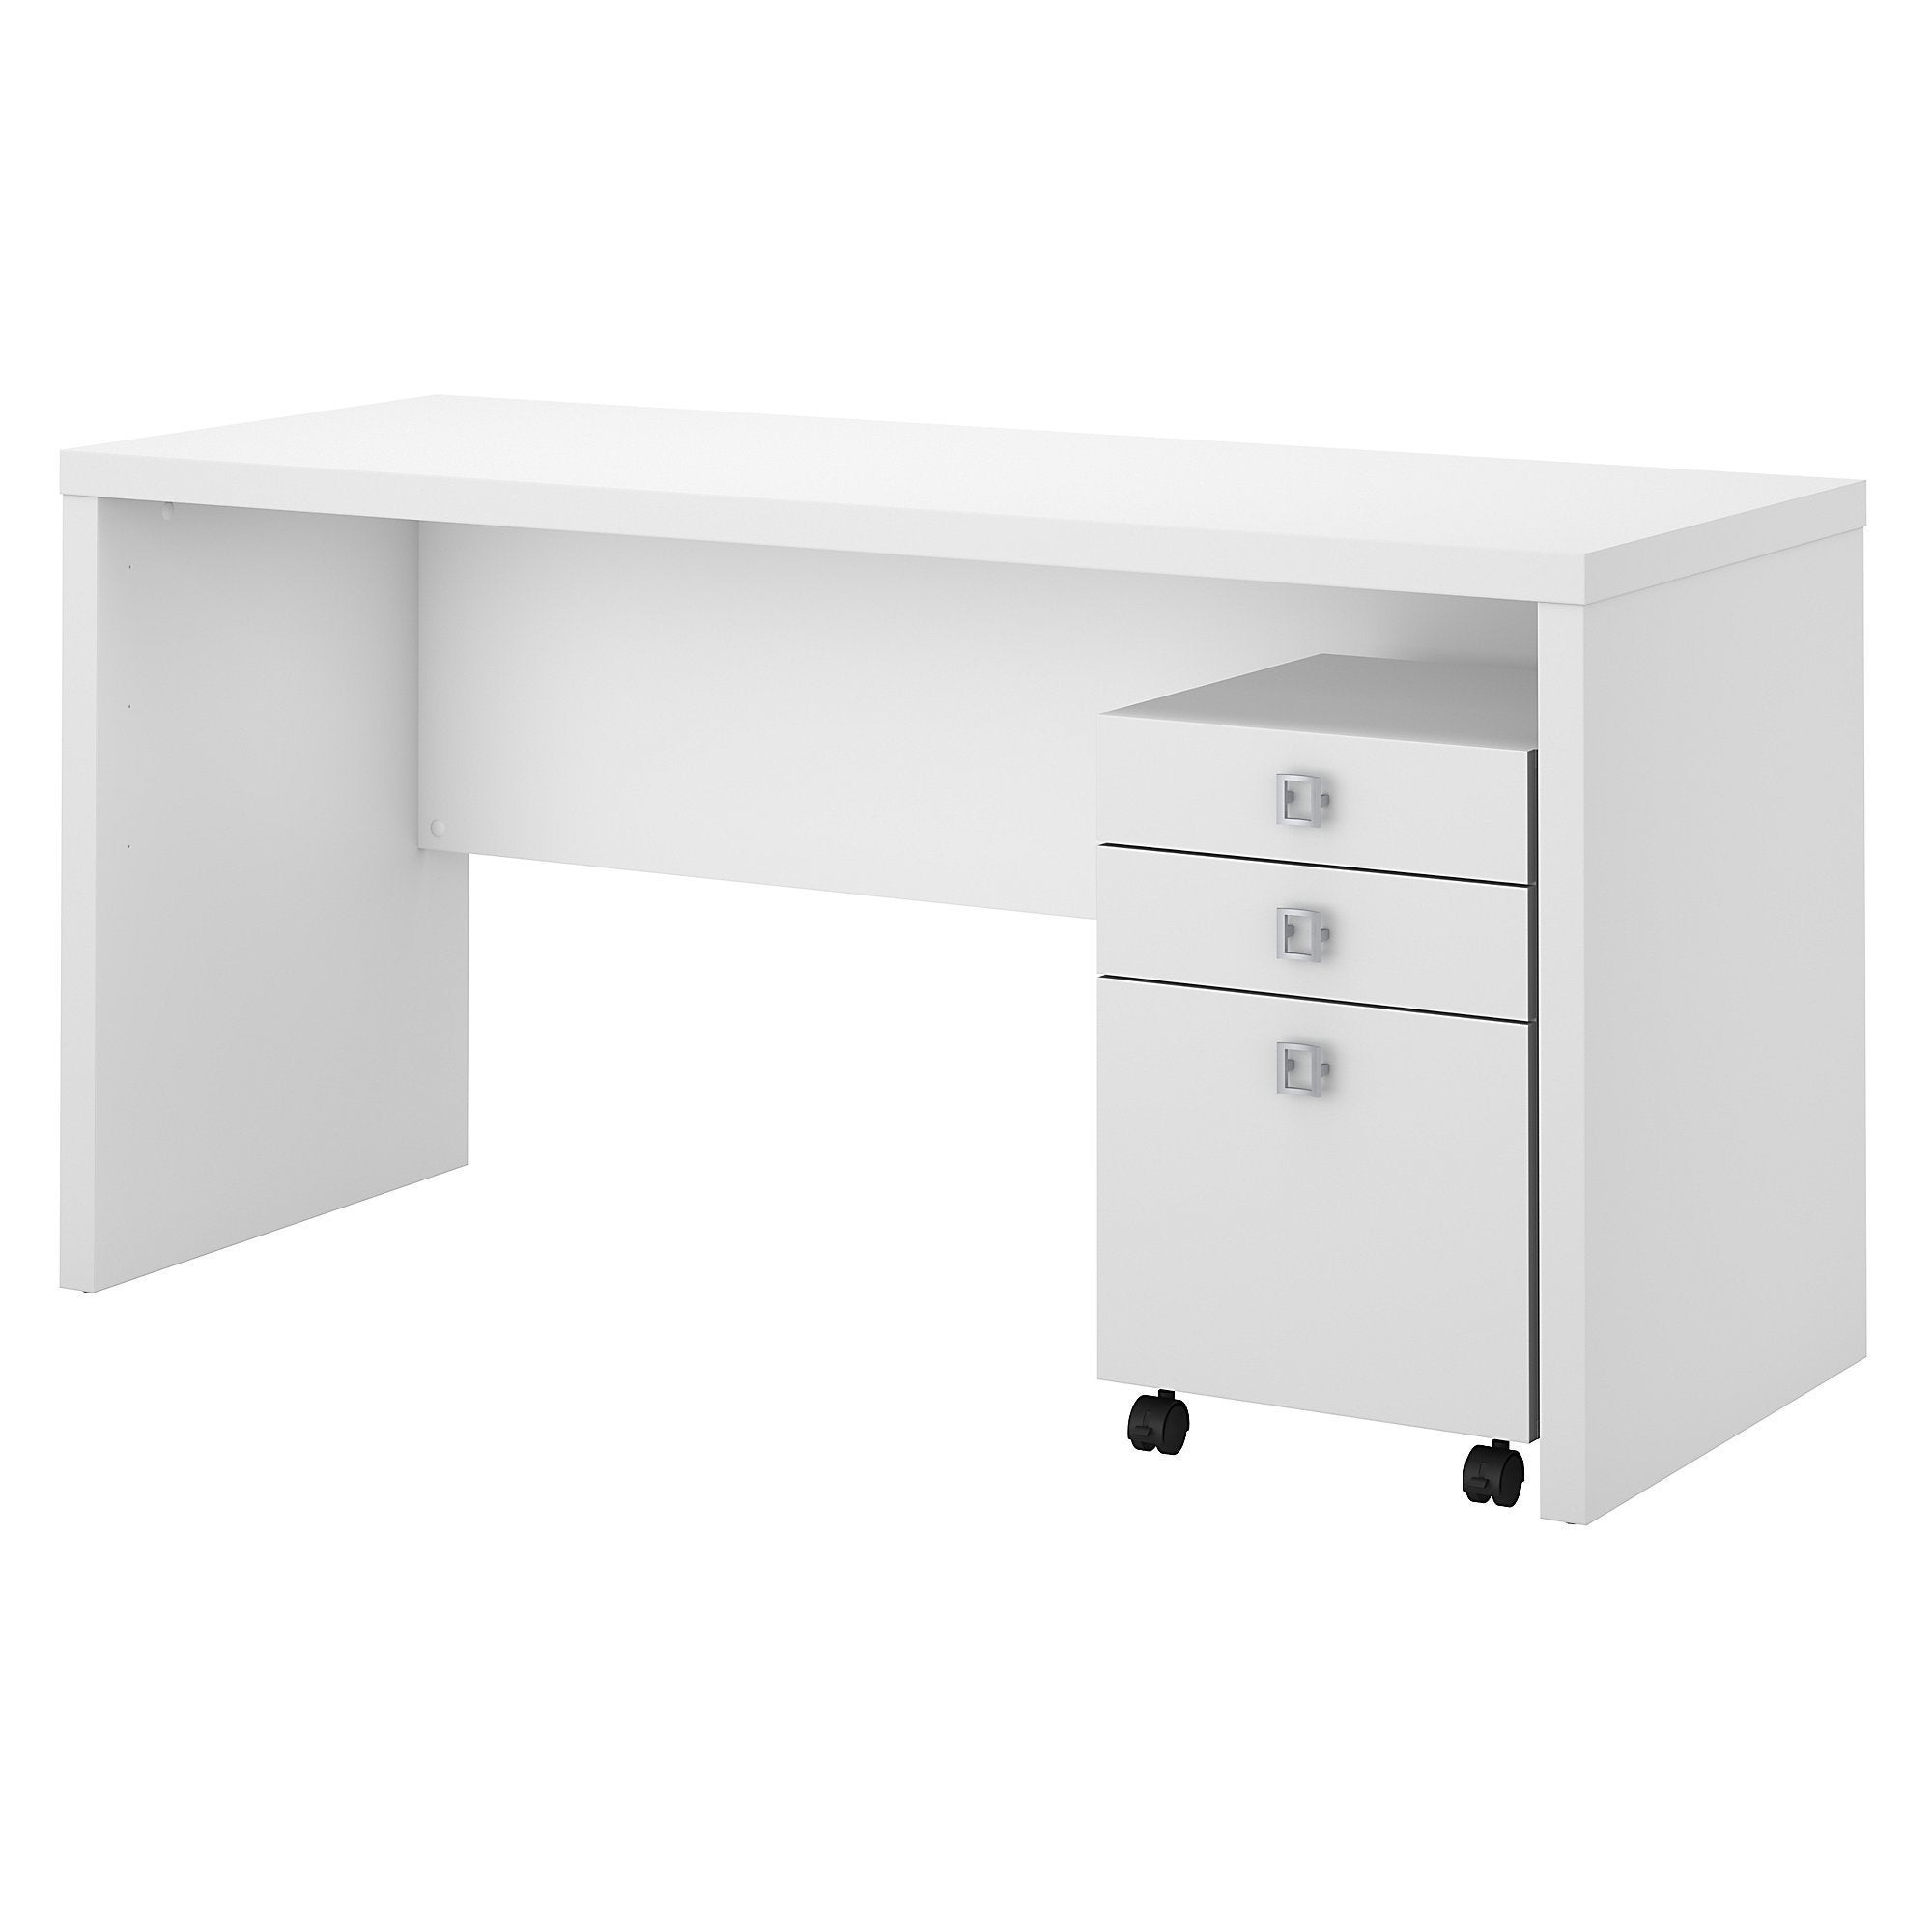 Shop Office By Kathy Ireland® Echo Credenza Desk With Mobile File Cabinet  In Pure White   On Sale   Free Shipping Today   Overstock.com   16003552